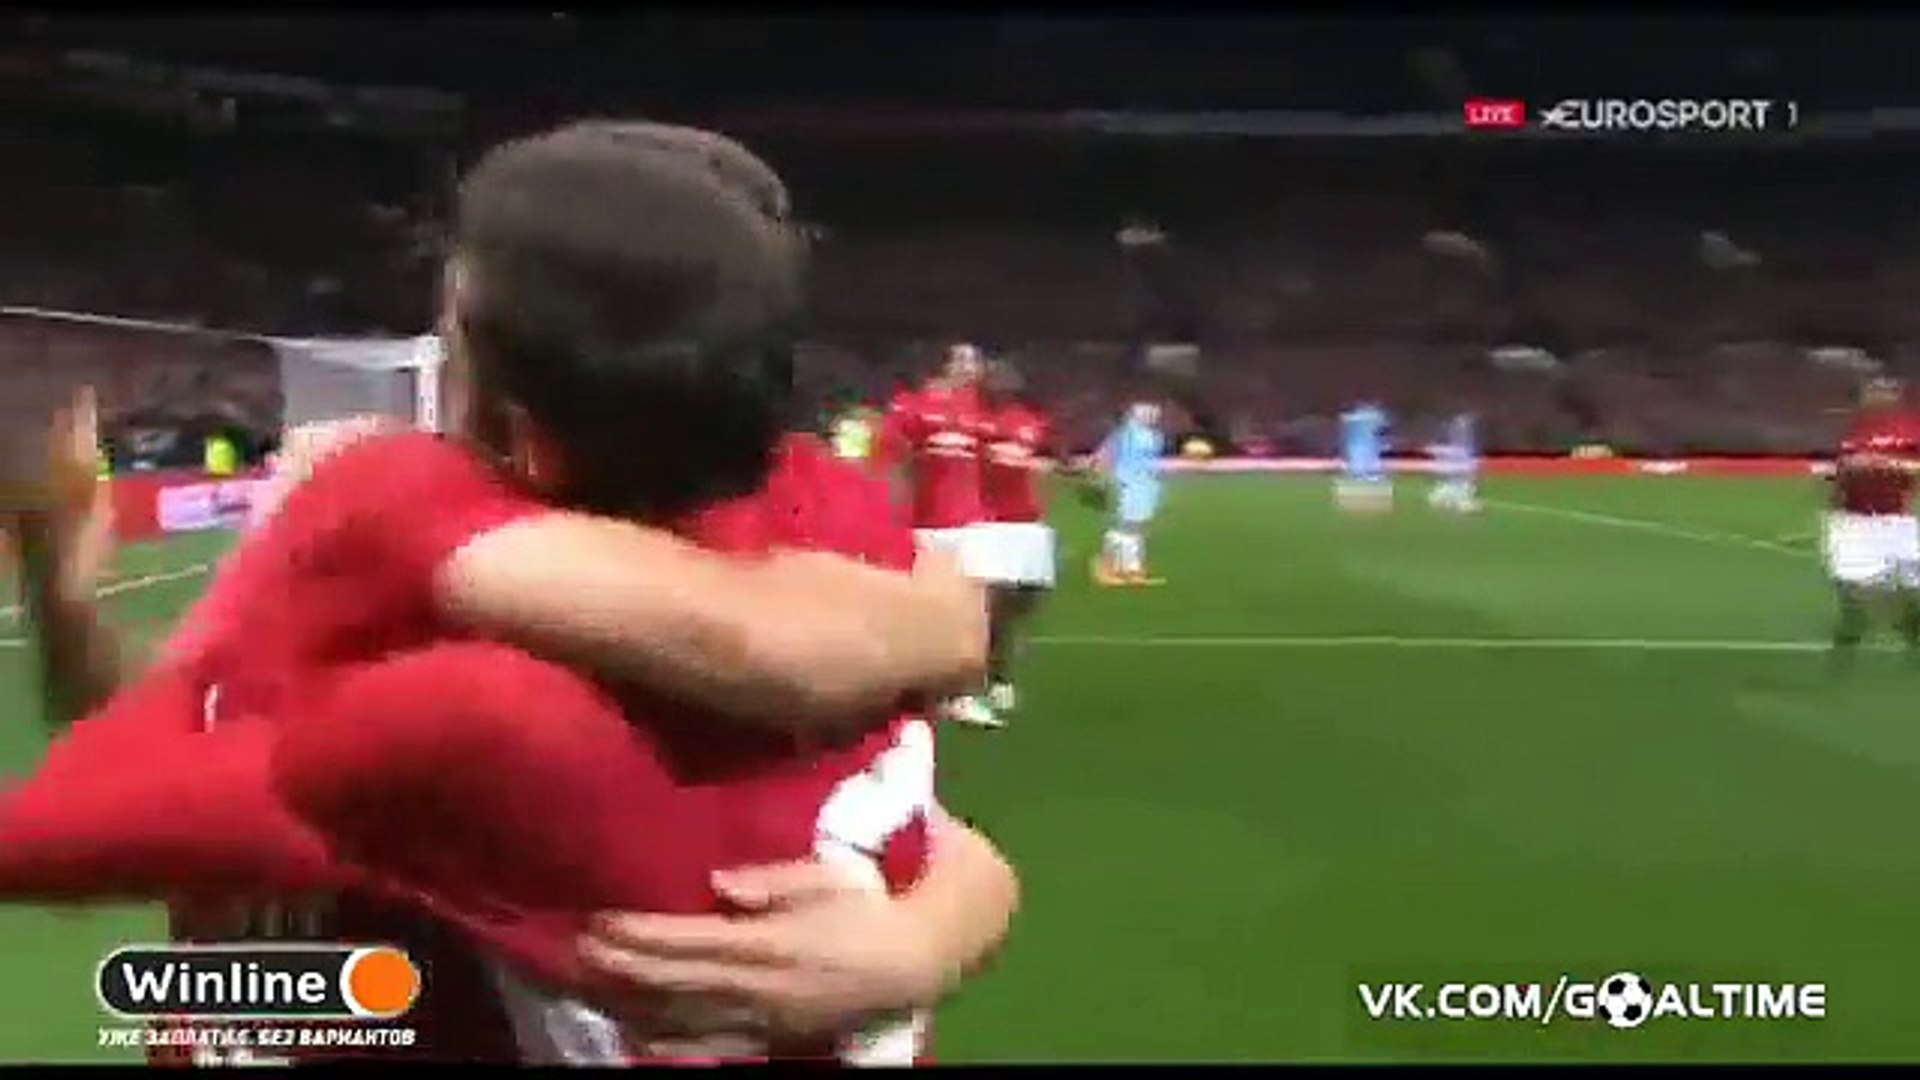 1-0 Juan Mata Goal HD - Manchester United 1-0 Manchester City - 26.10.2016 HD